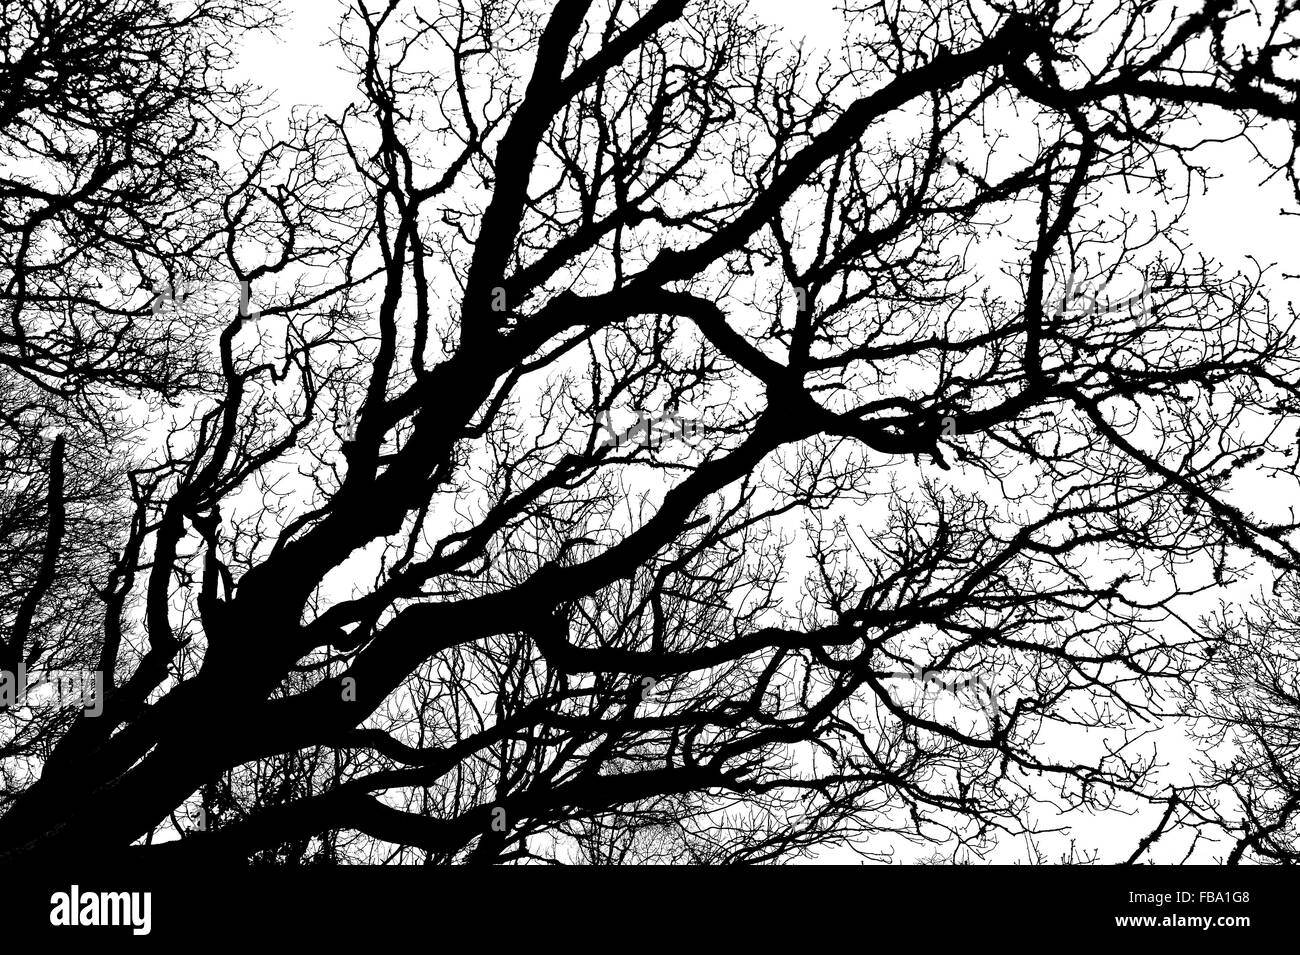 Black and white abstract silhouette of winter tree branches